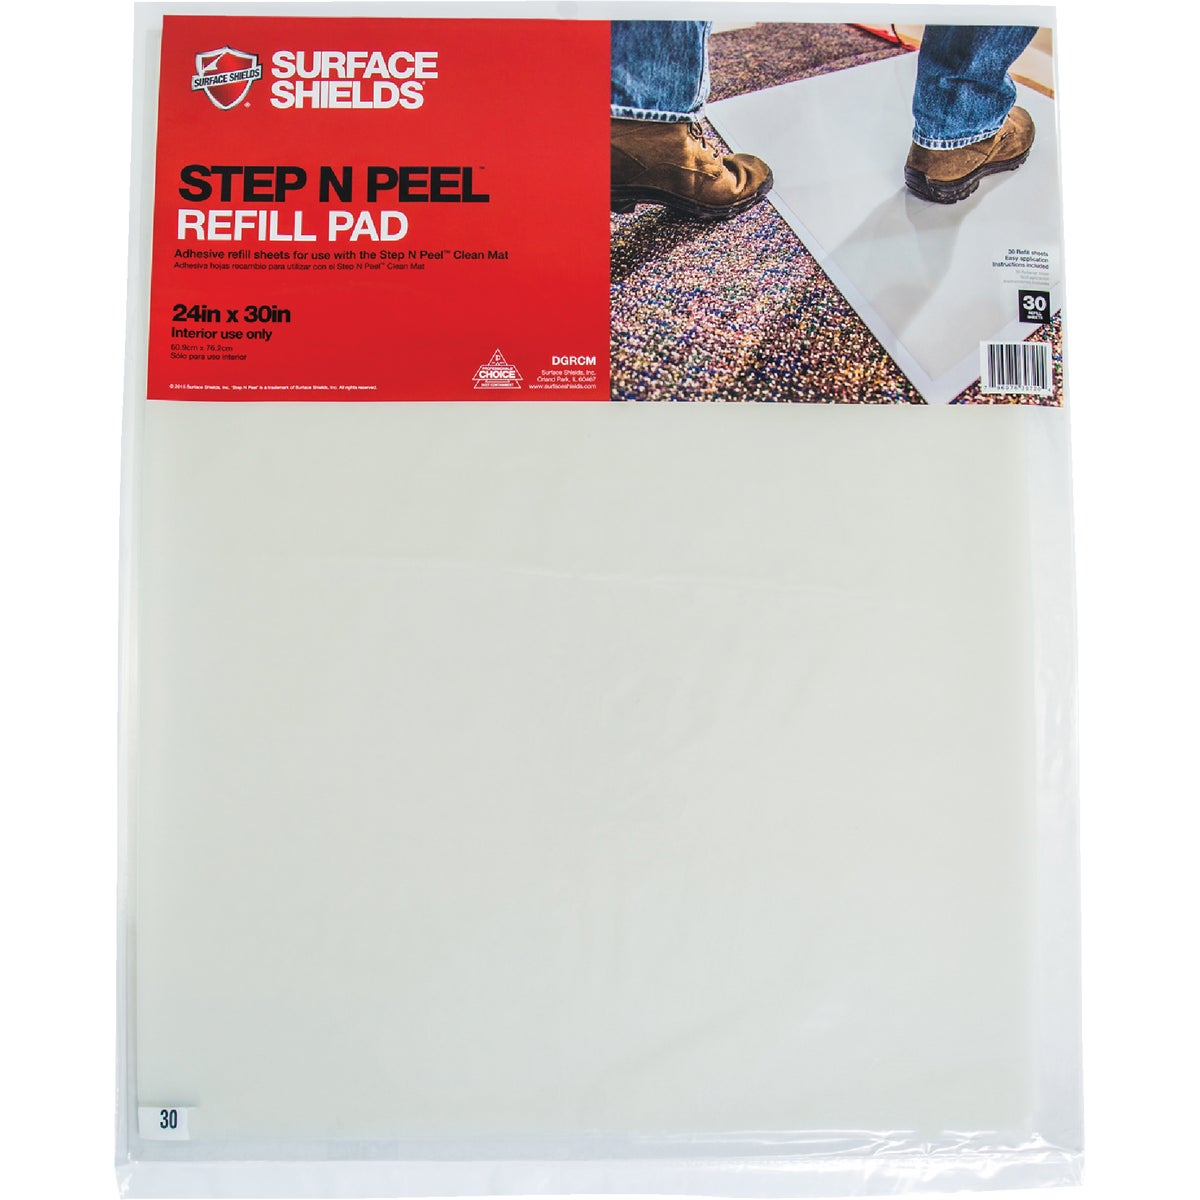 STEP N PEEL REFIL SHEETS - DGRCM by Surface Shields Inc